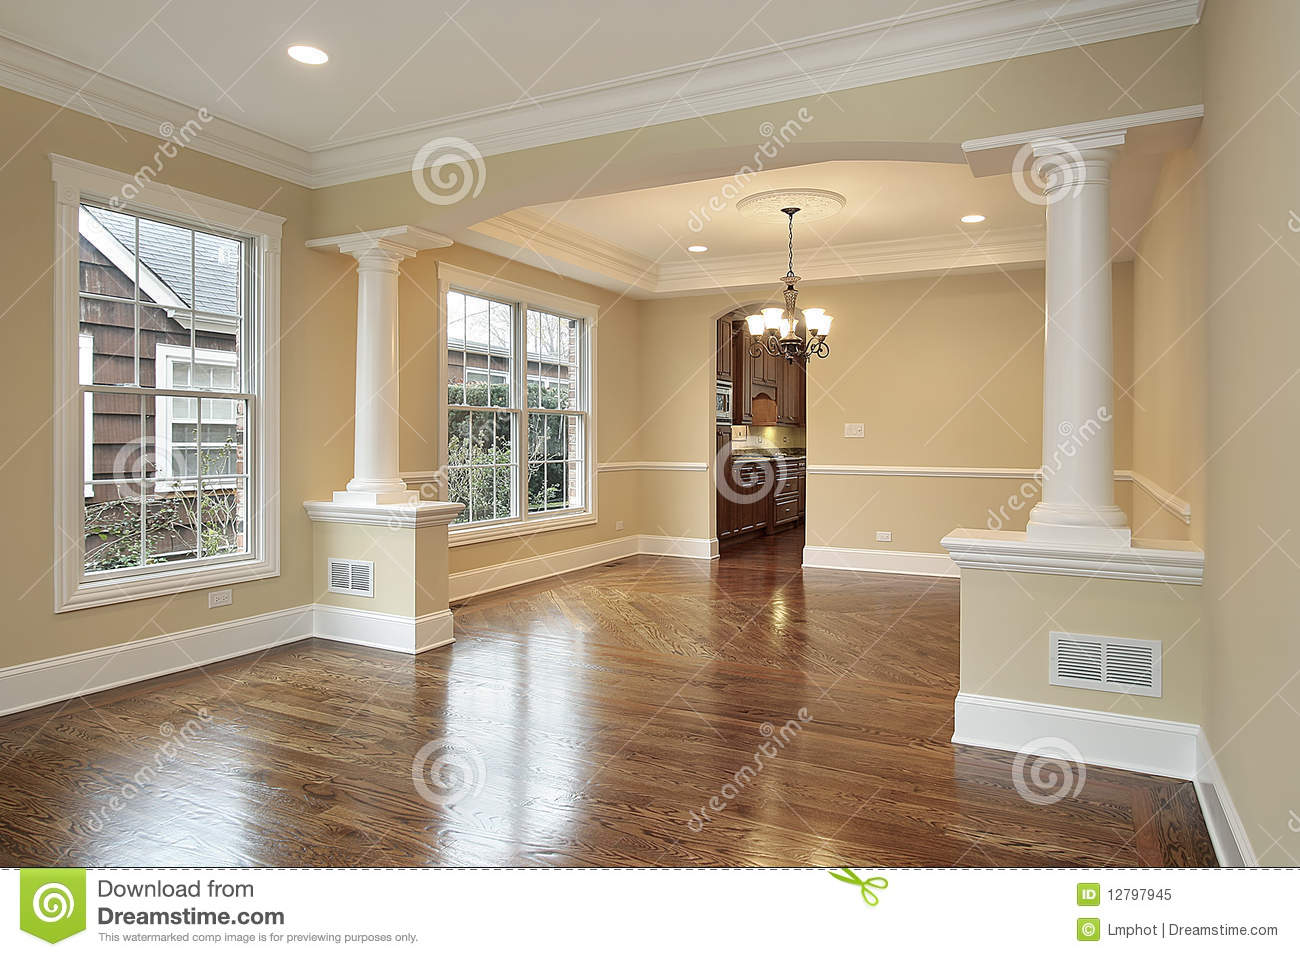 Living and dining room with white pillars royalty free for Dining room designs with pillars